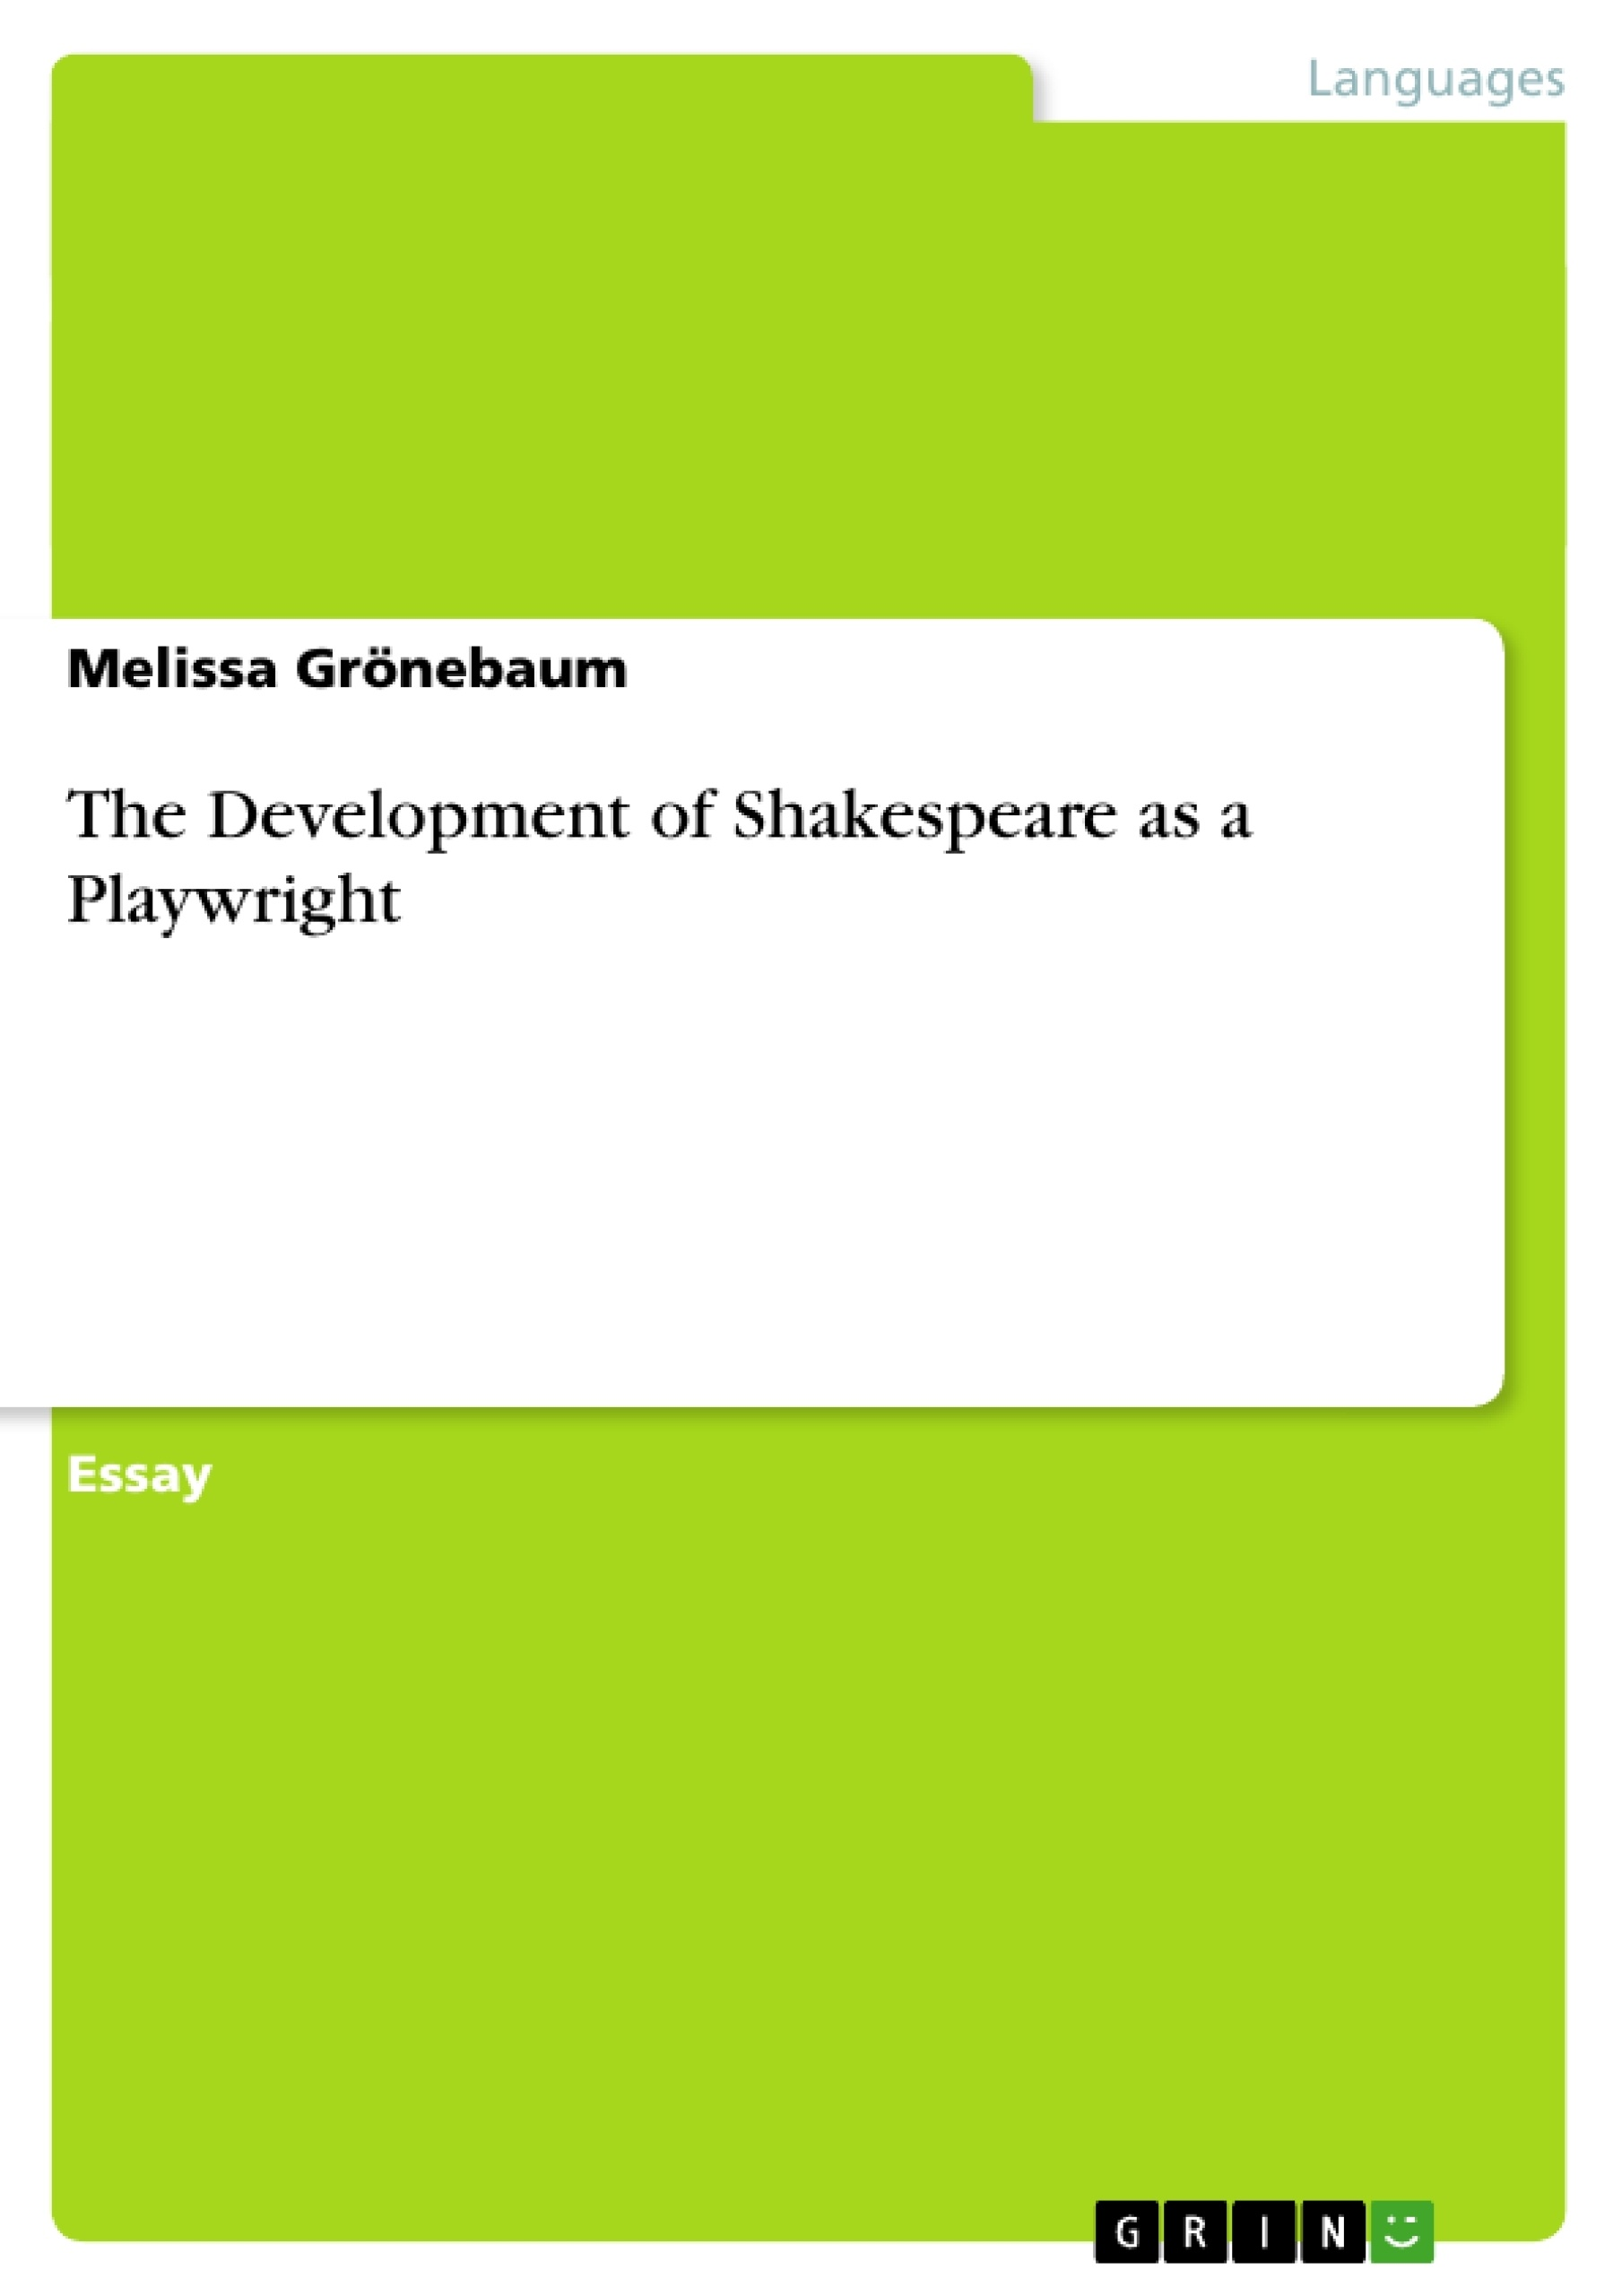 the development of shakespeare as a playwright publish your the development of shakespeare as a playwright publish your master s thesis bachelor s thesis essay or term paper